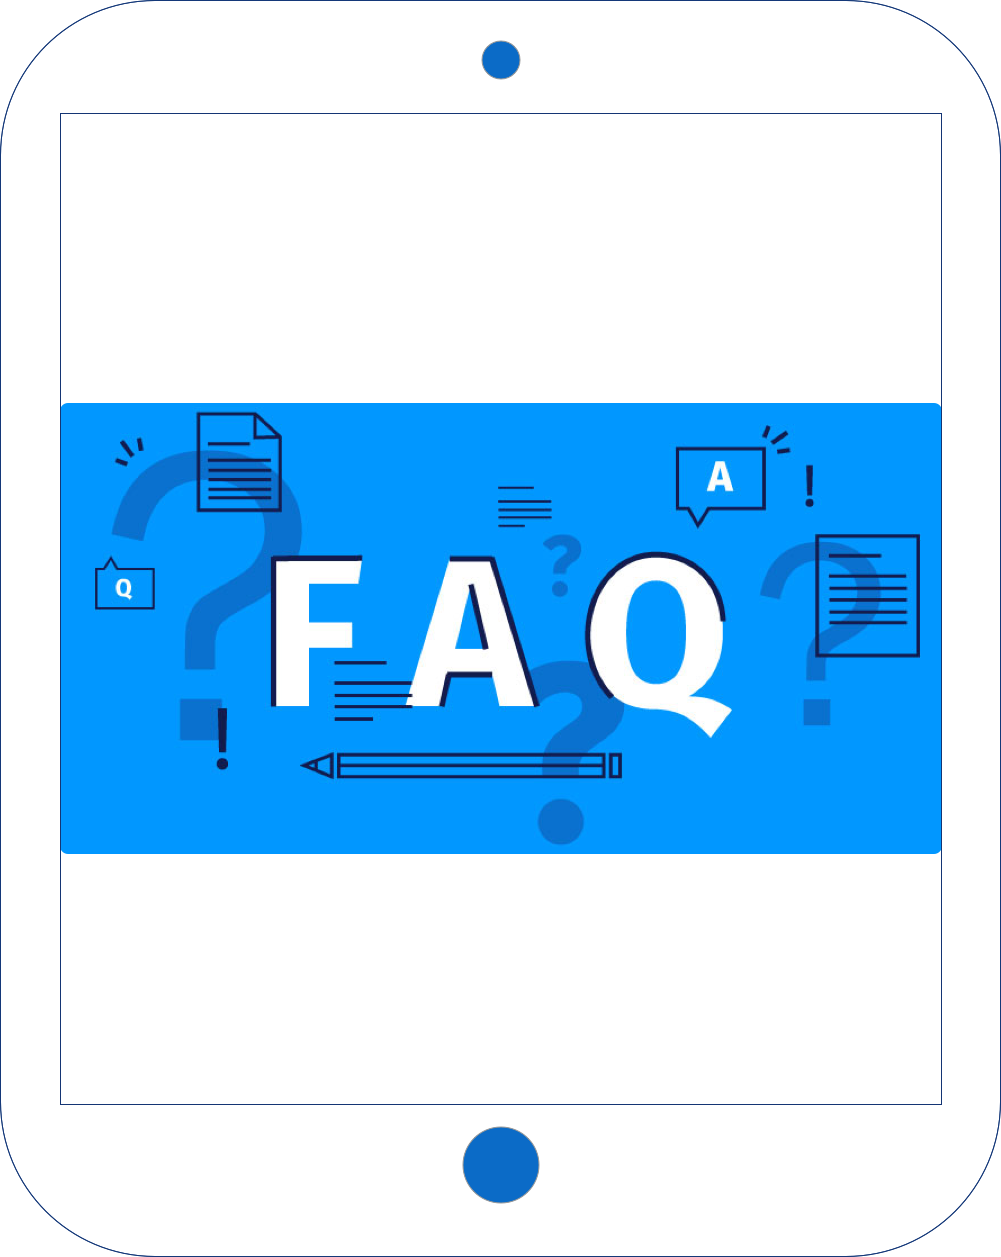 FAQ Ipad image